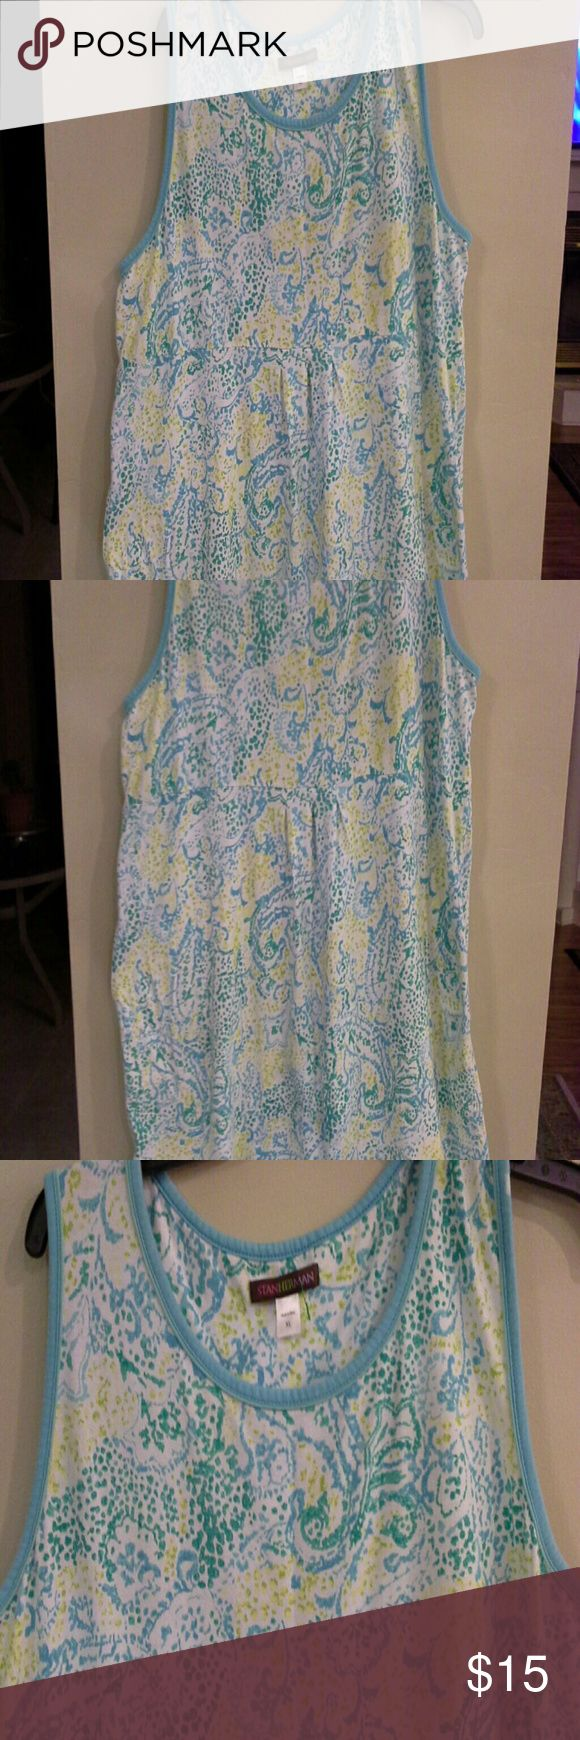 Lounge dress A few pleats in front.  Pullover.  In excellent condition Stan Herman Intimates & Sleepwear